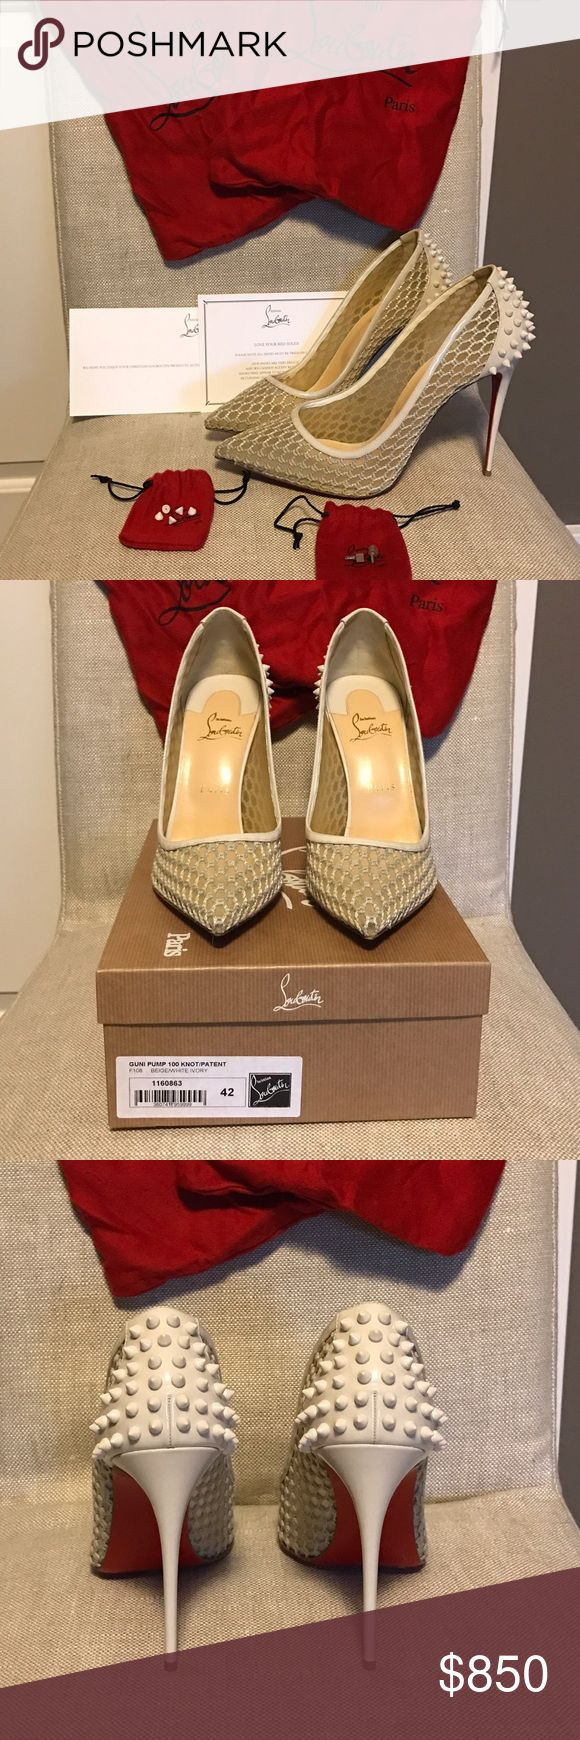 Guni Pump 100 knot/patent Never worn, comes with box, extra heel stops, shoe bags and receipt.  Bought these right before I got pregnant and feet grew so they are too small, otherwise would be keeping as they are amazing shoes!  Price firm on these as they are rare and hard to find size.  These fit like a normal size 10- 10.5. Christian Louboutin Shoes Heels